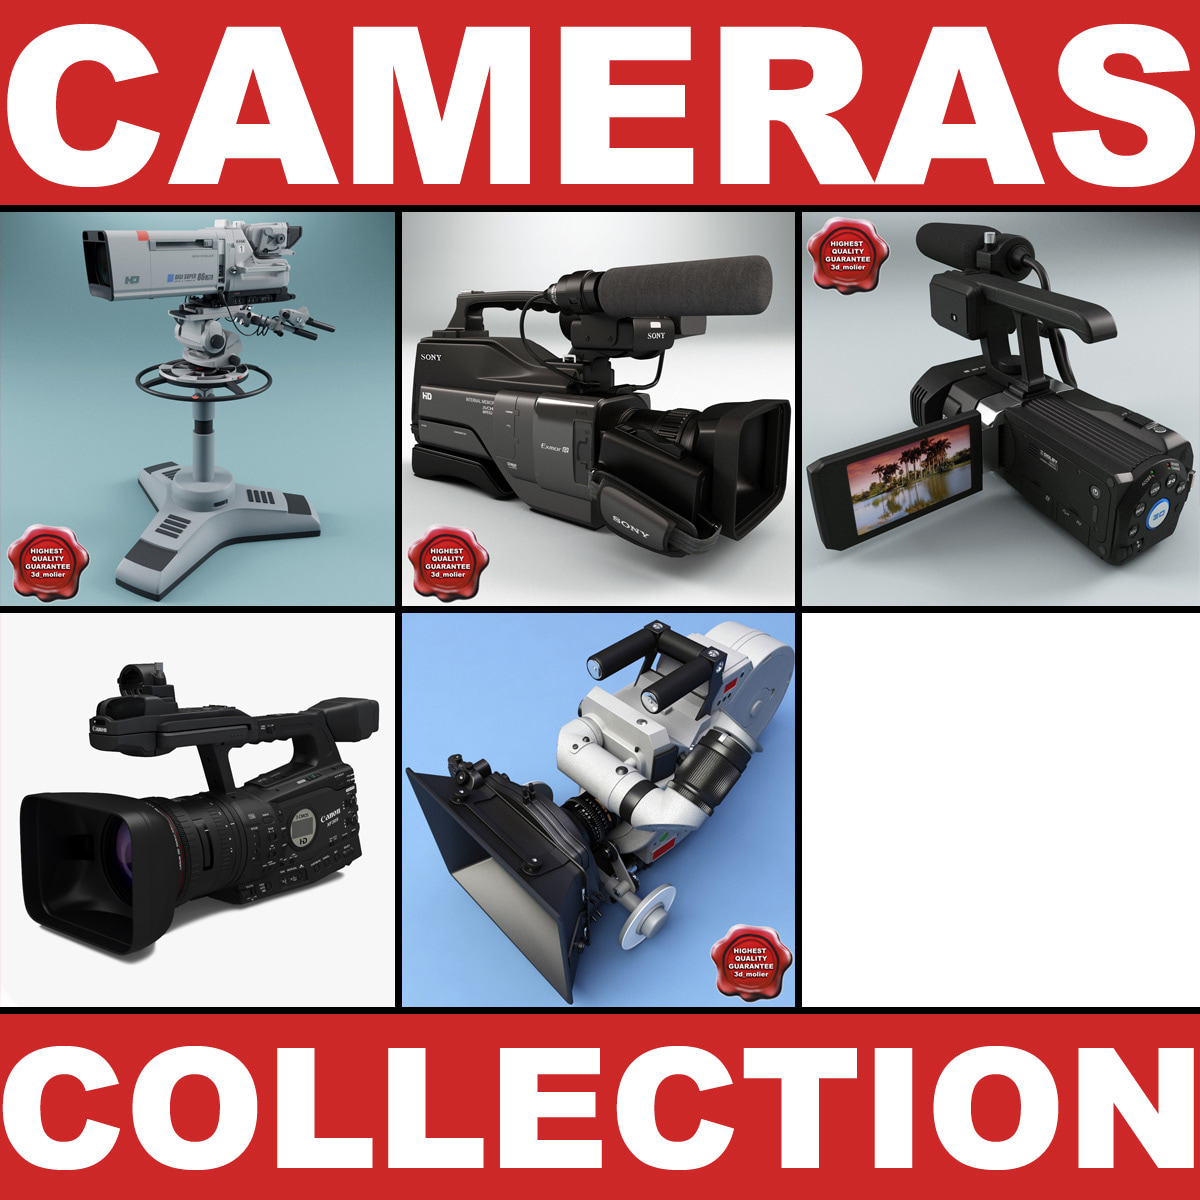 Professional Cameras Collection v2